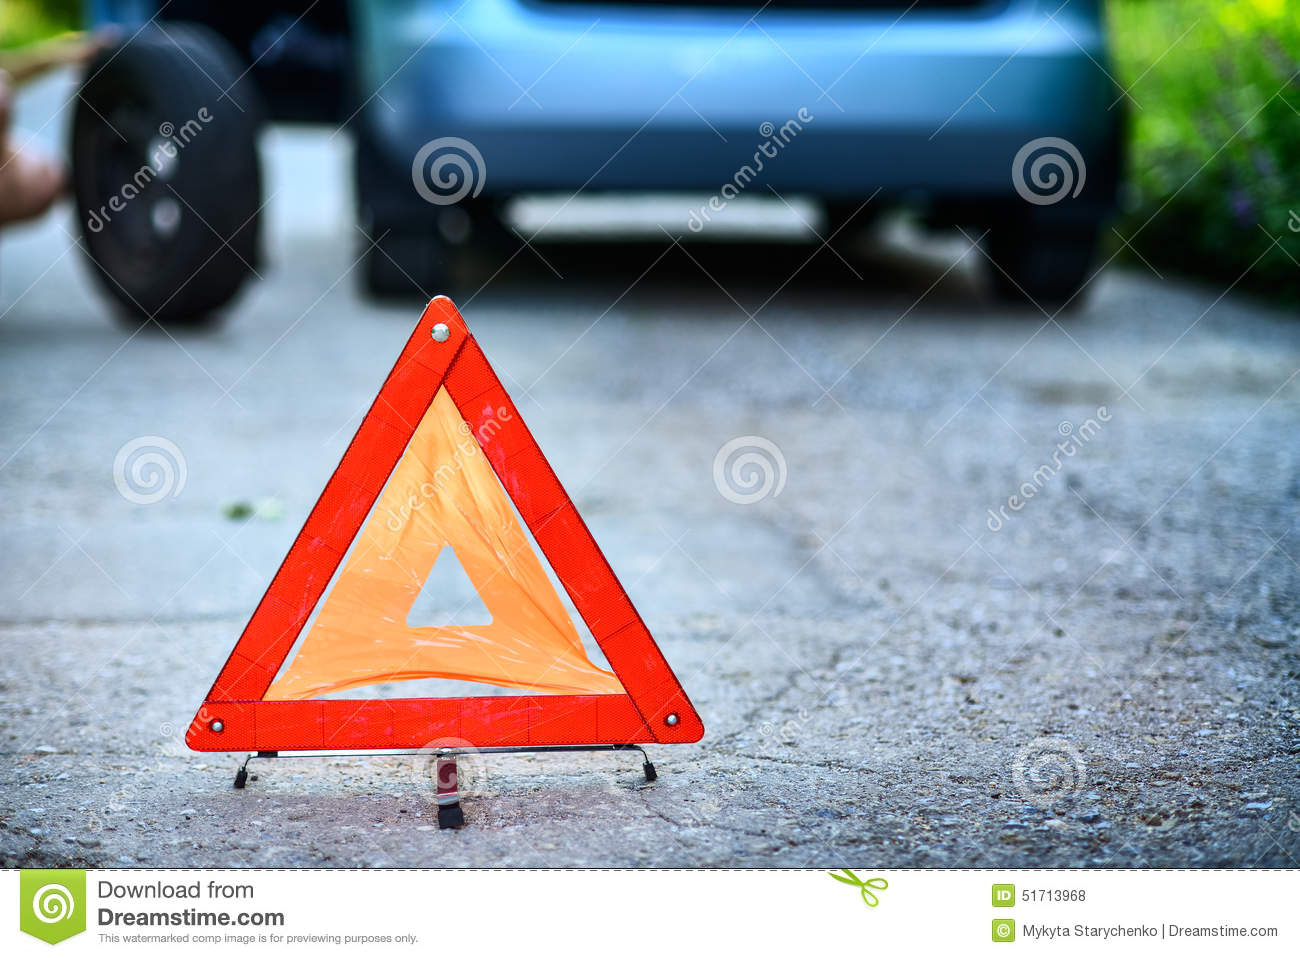 Download Emergency Stop Sign In Backround With Broken Down Car Stock Photo - Image of frustration, palm: 51713968